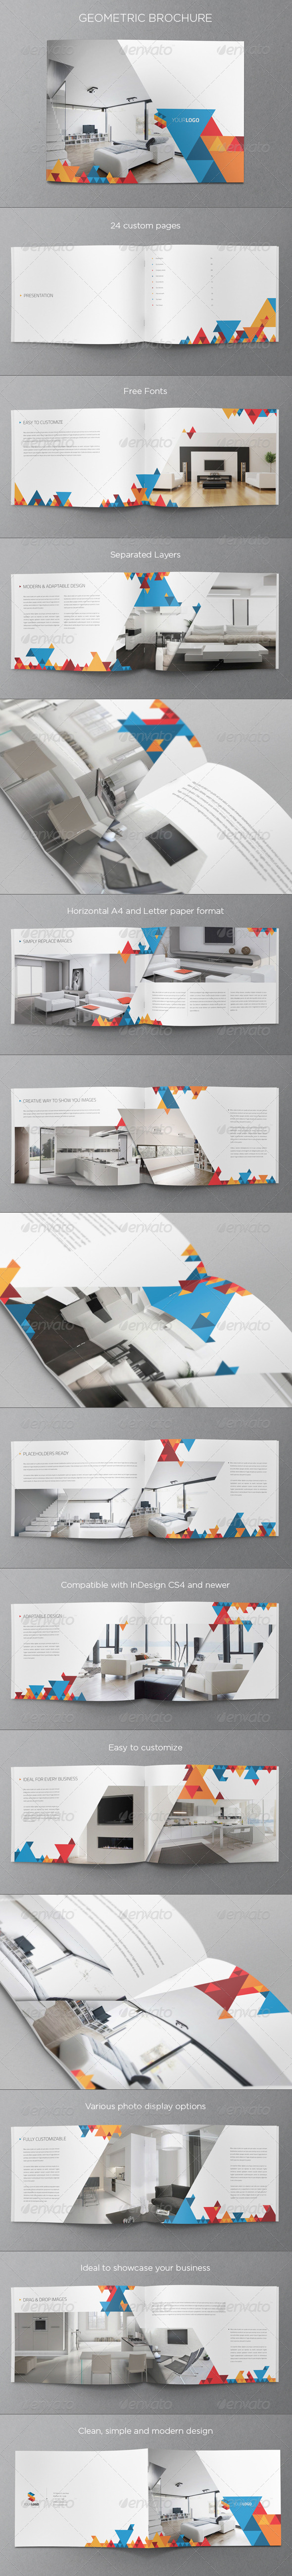 GraphicRiver Modern Geometric Brochure 5427360